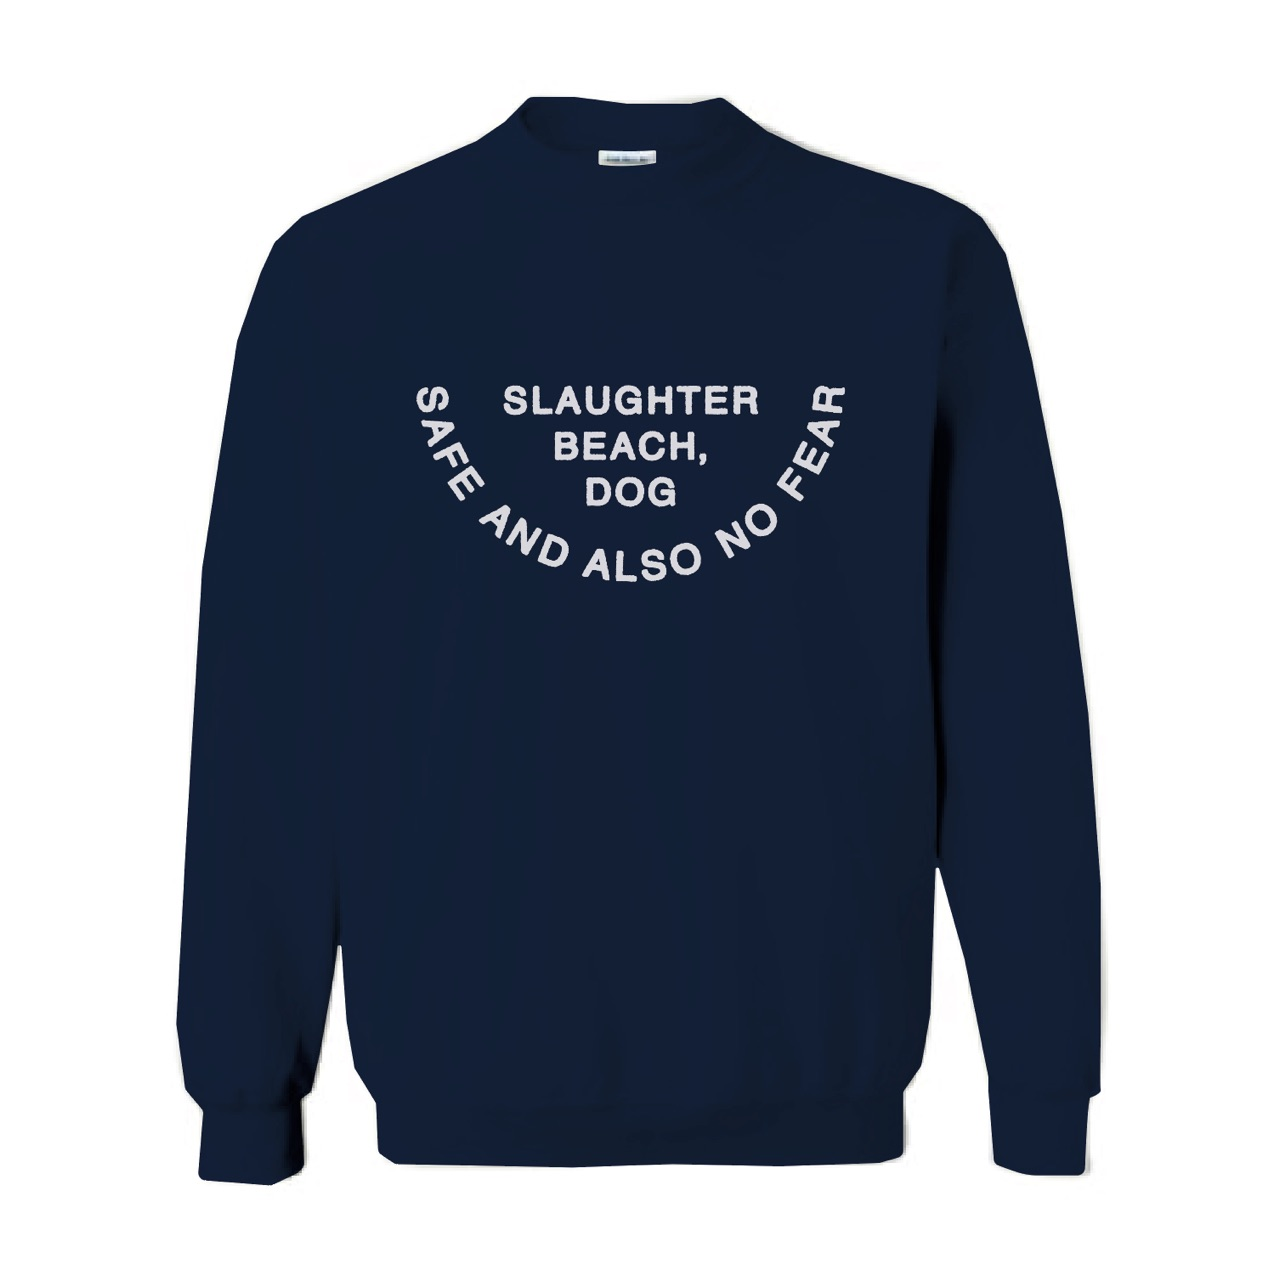 Safe and Also No Fear Crew Neck